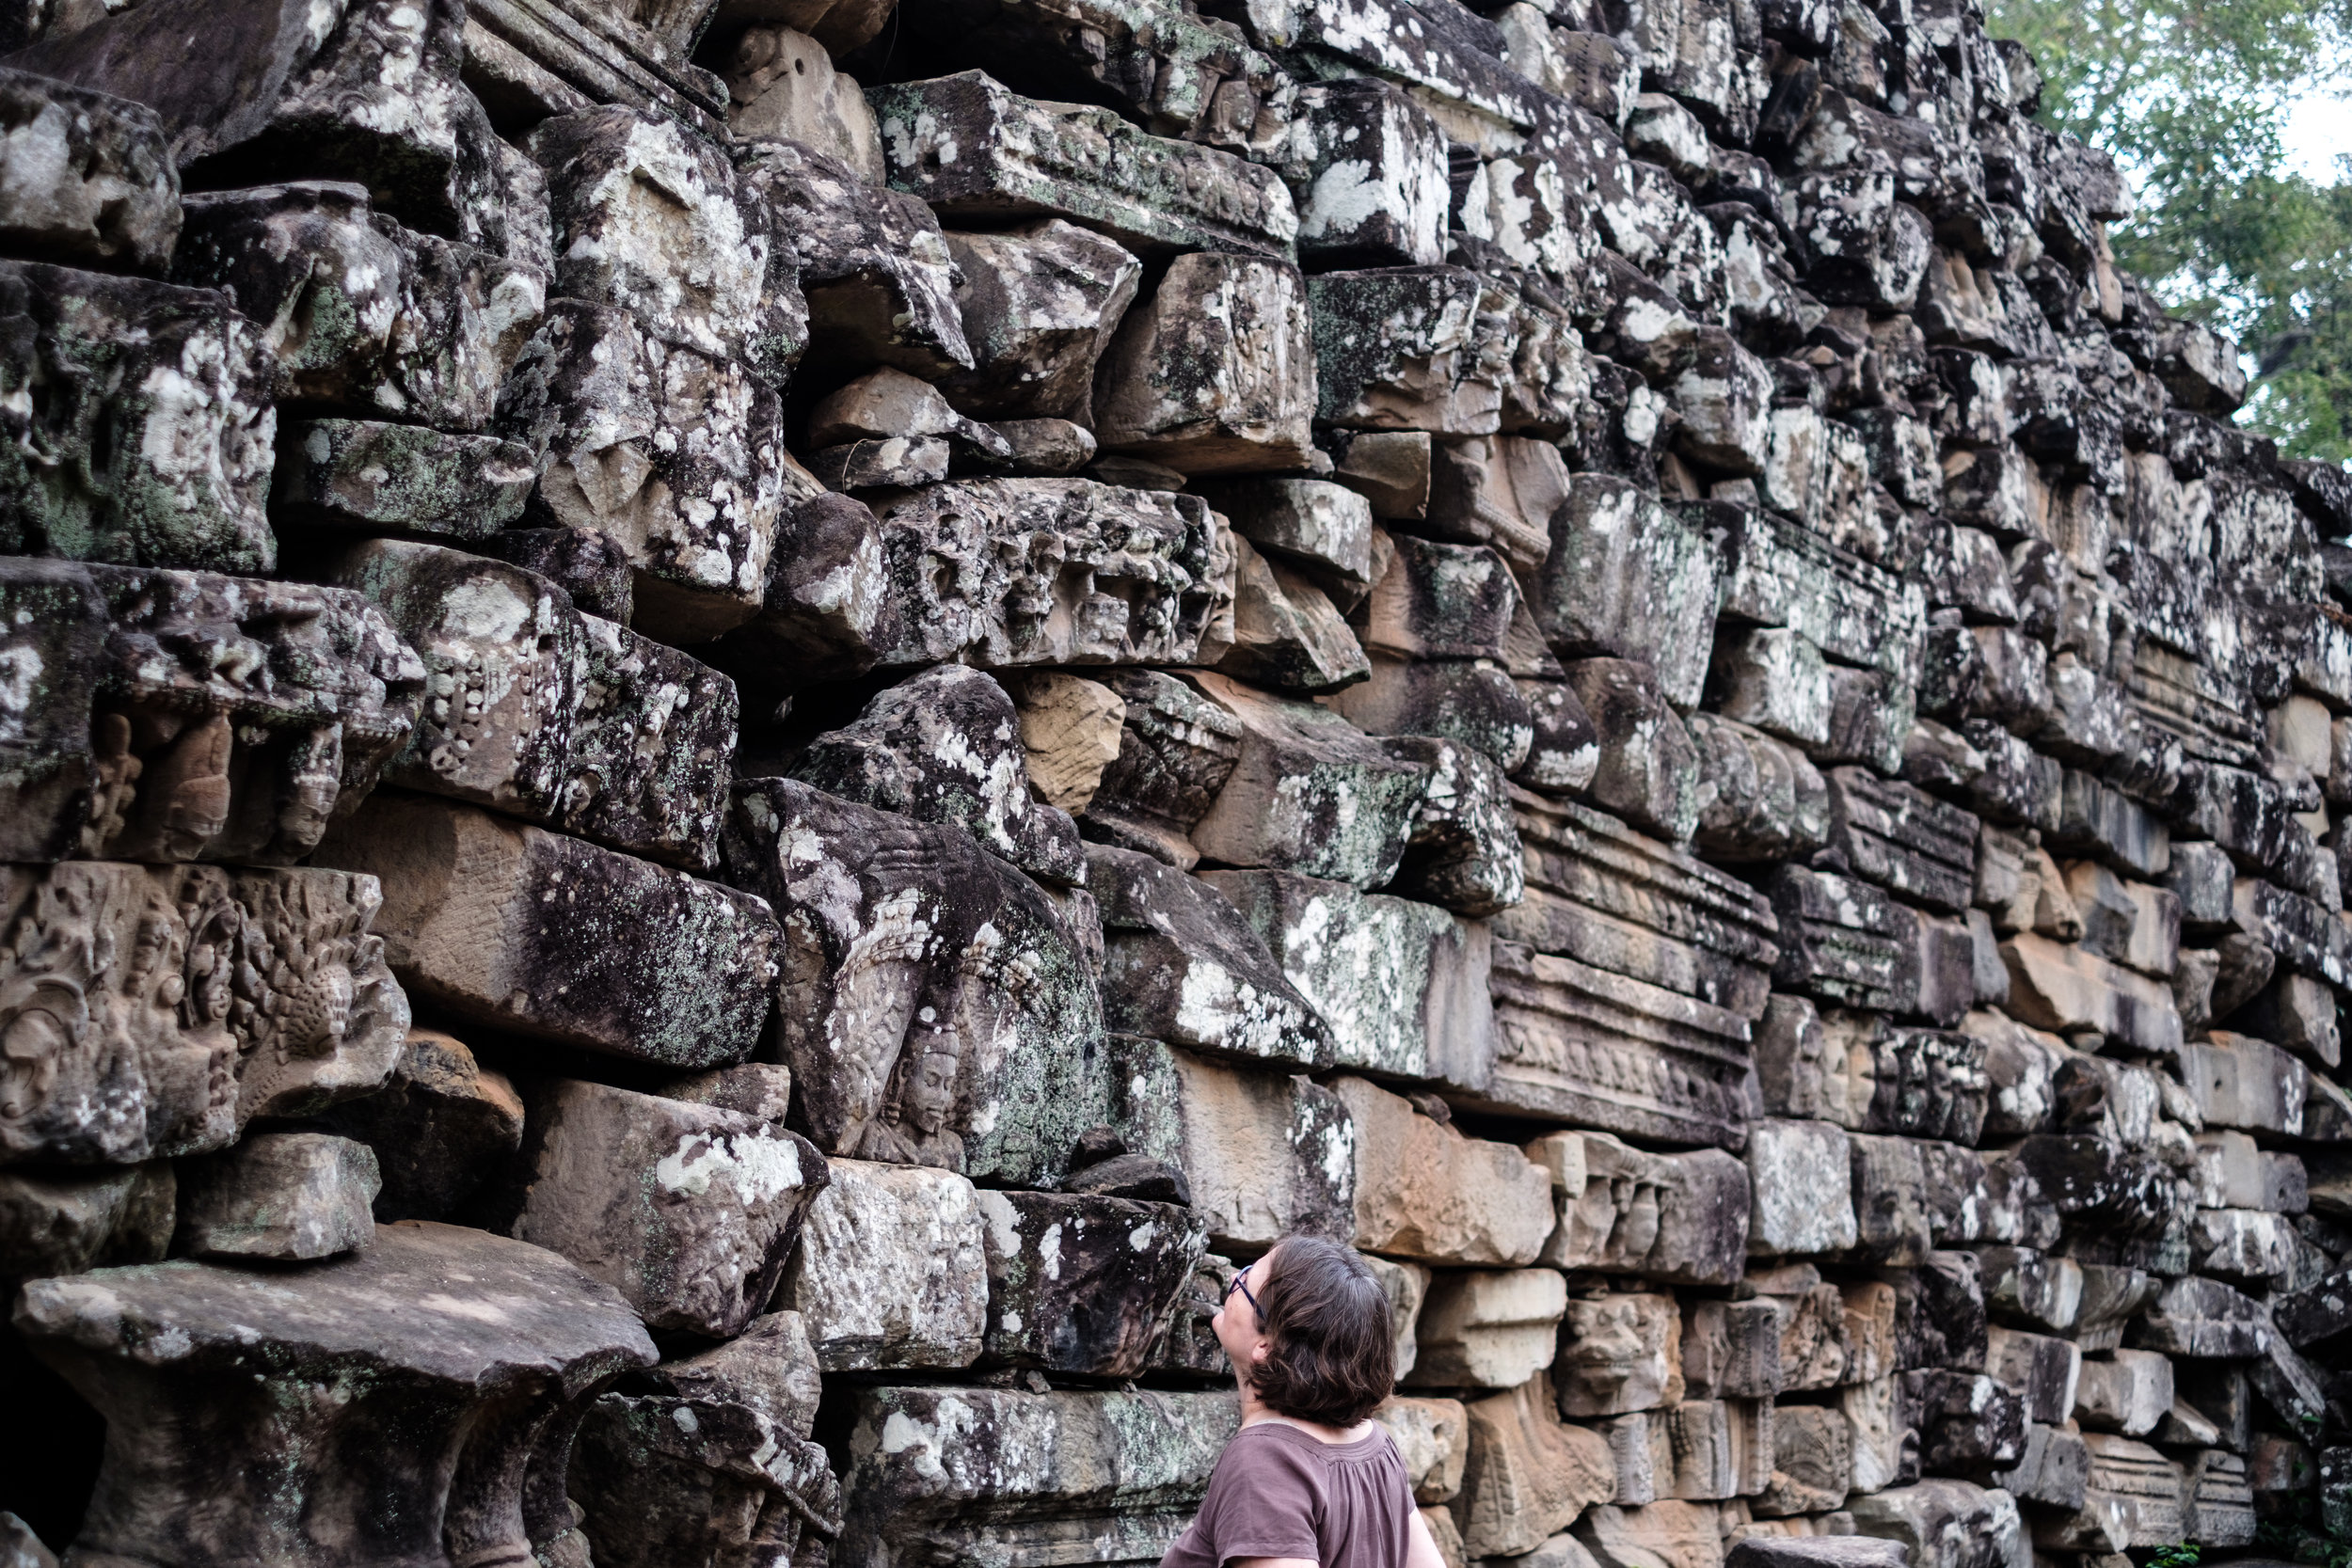 A woman studying the artifacts a Angkor Wat in Siem Reap